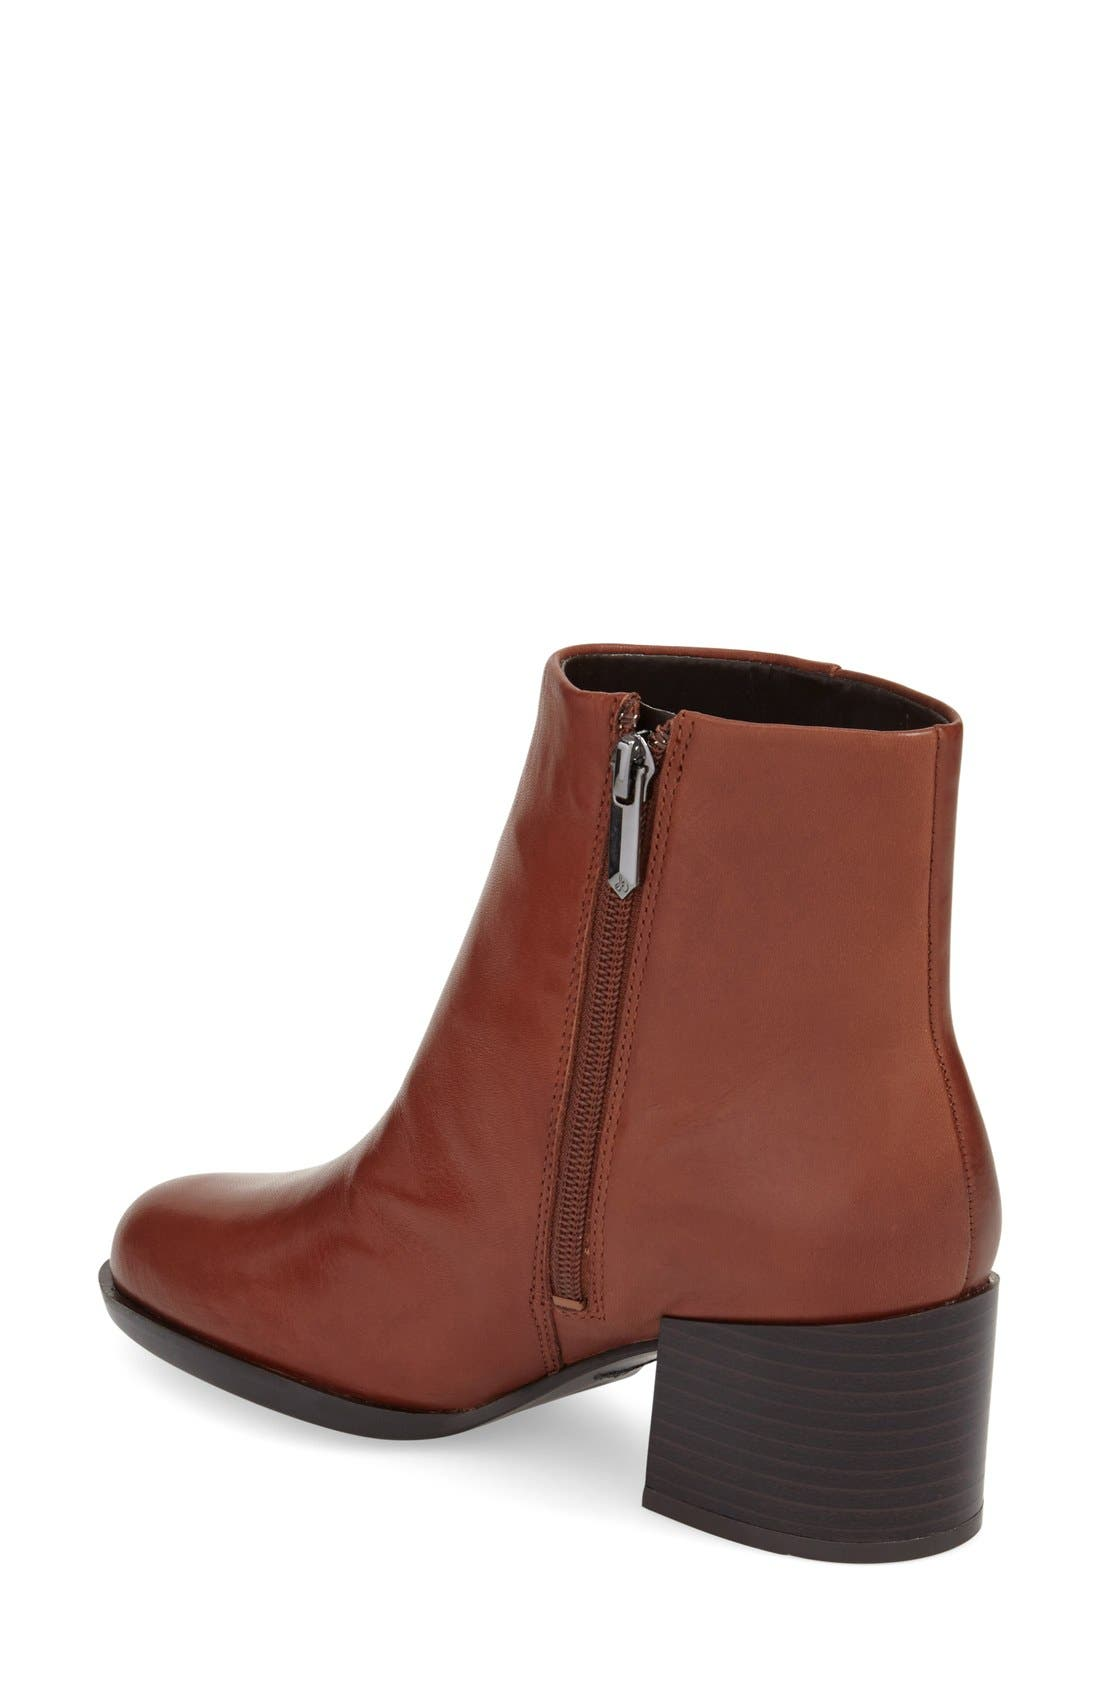 Alternate Image 2  - Sam Edelman 'Joey' Bootie (Women)